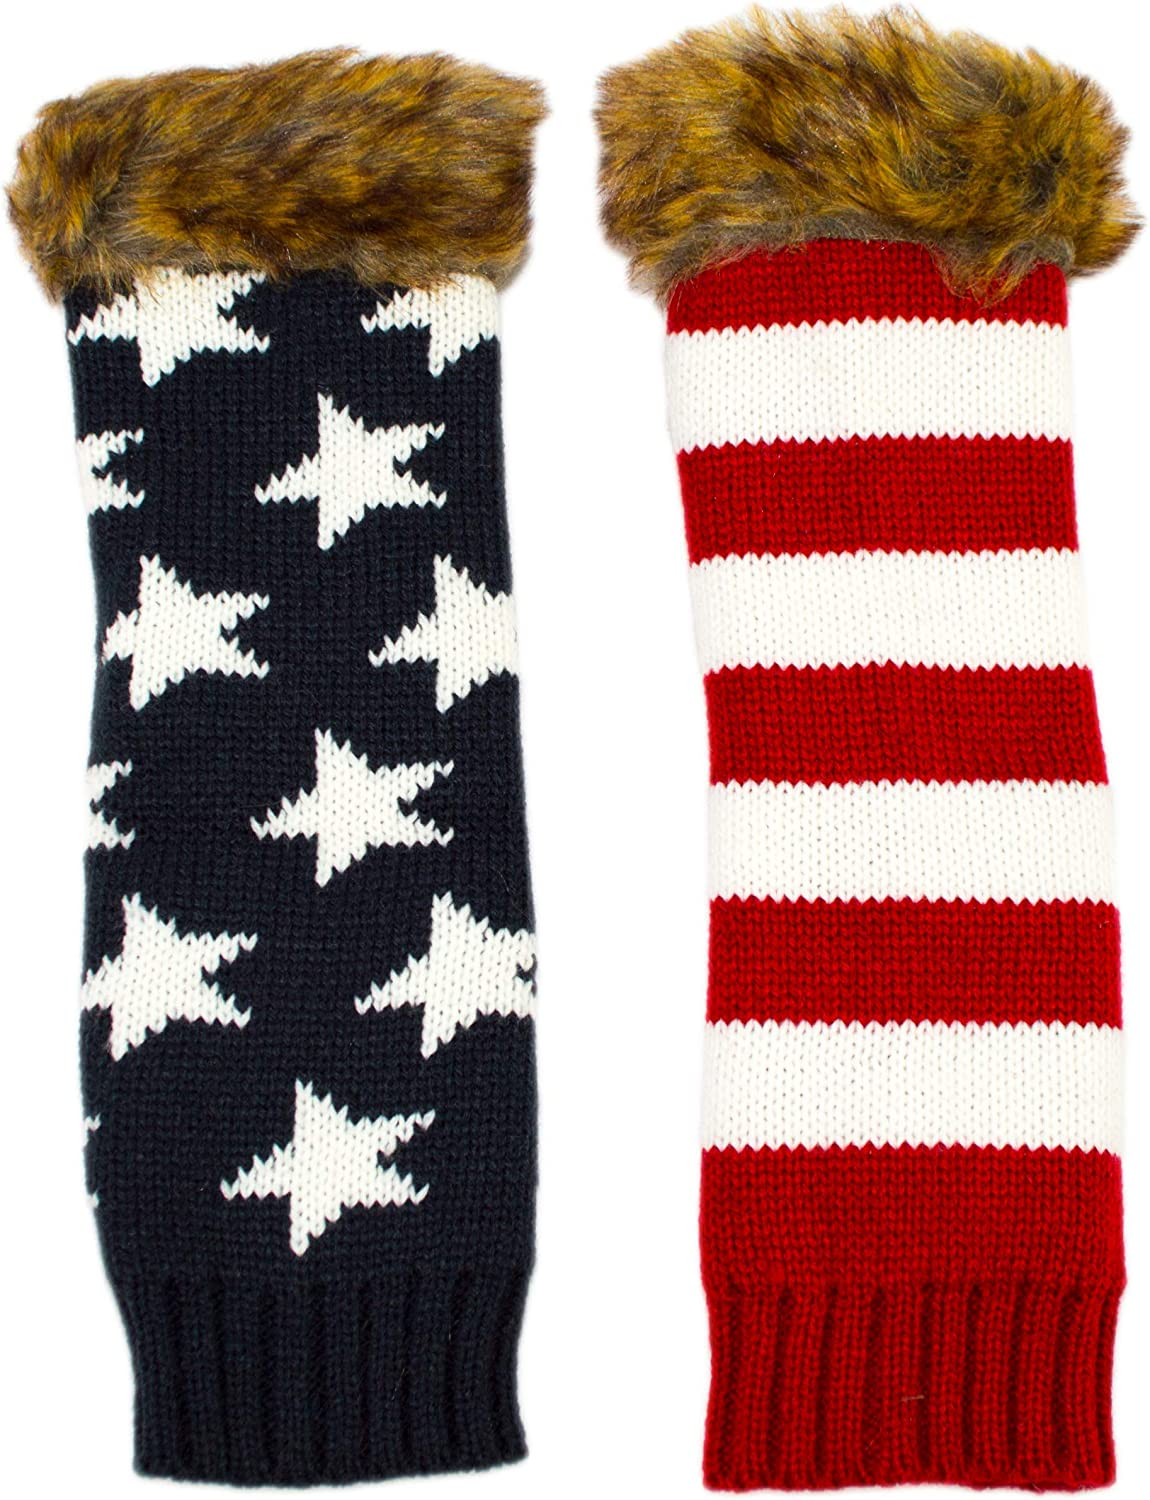 Stripey Striped Womens Long Fingerless Slouch Gloves Armwarmers Winter Mittens